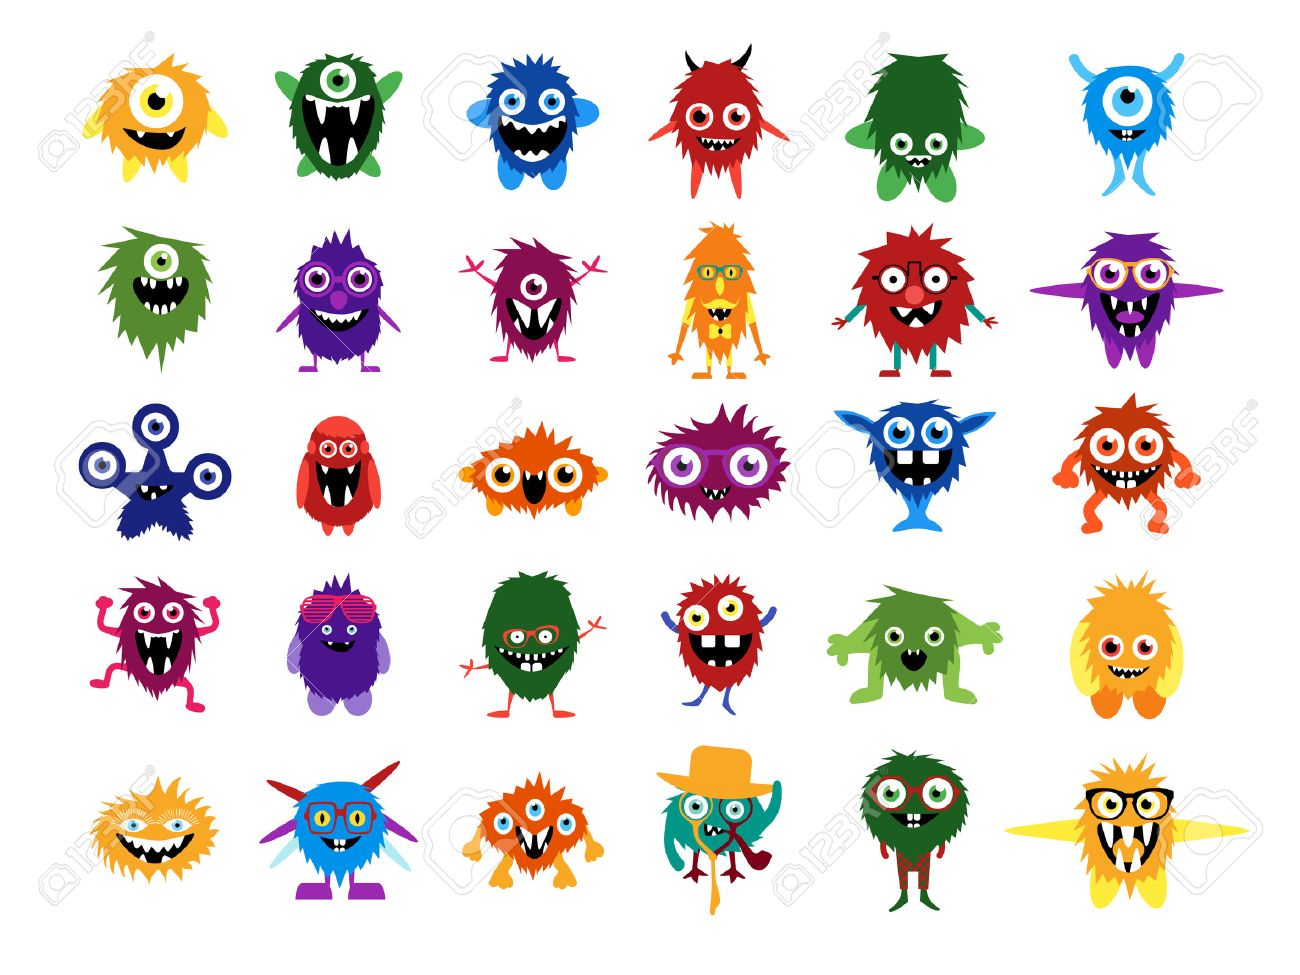 Cute monsters. Big set of cartoon monsters. Editable faces, eyes, teeth, smiles. Fluffy vector monsters and aliens in glasses with custom expessions and gesture. Halloween creatures for your design. - 45720660